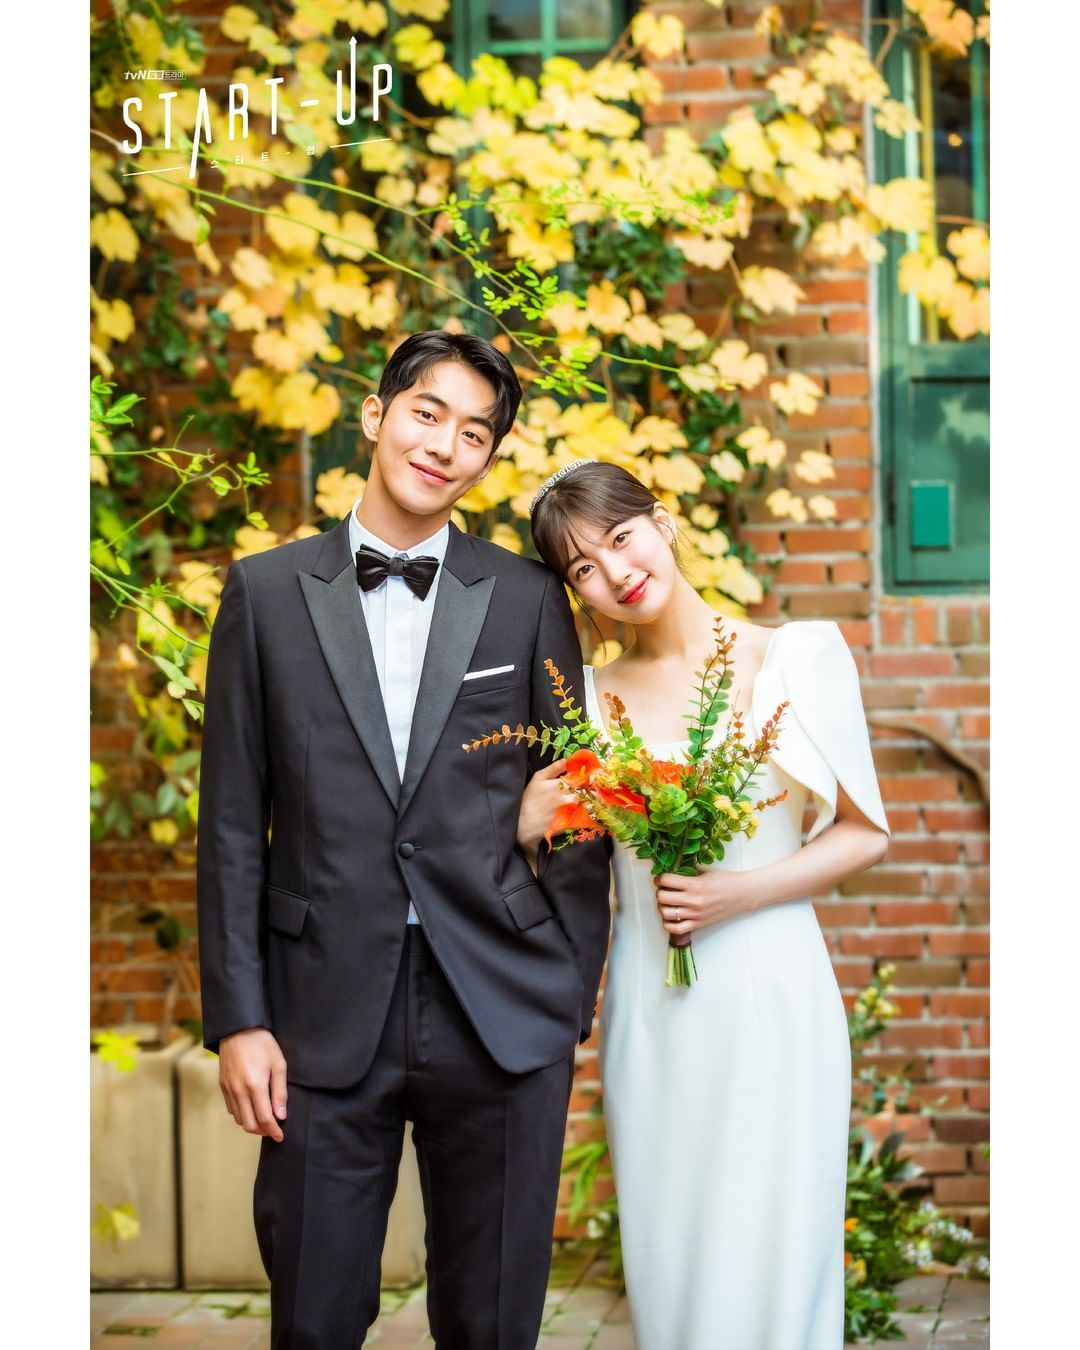 Bae Suzy's 'Start-Up' wedding dress and how much it costs